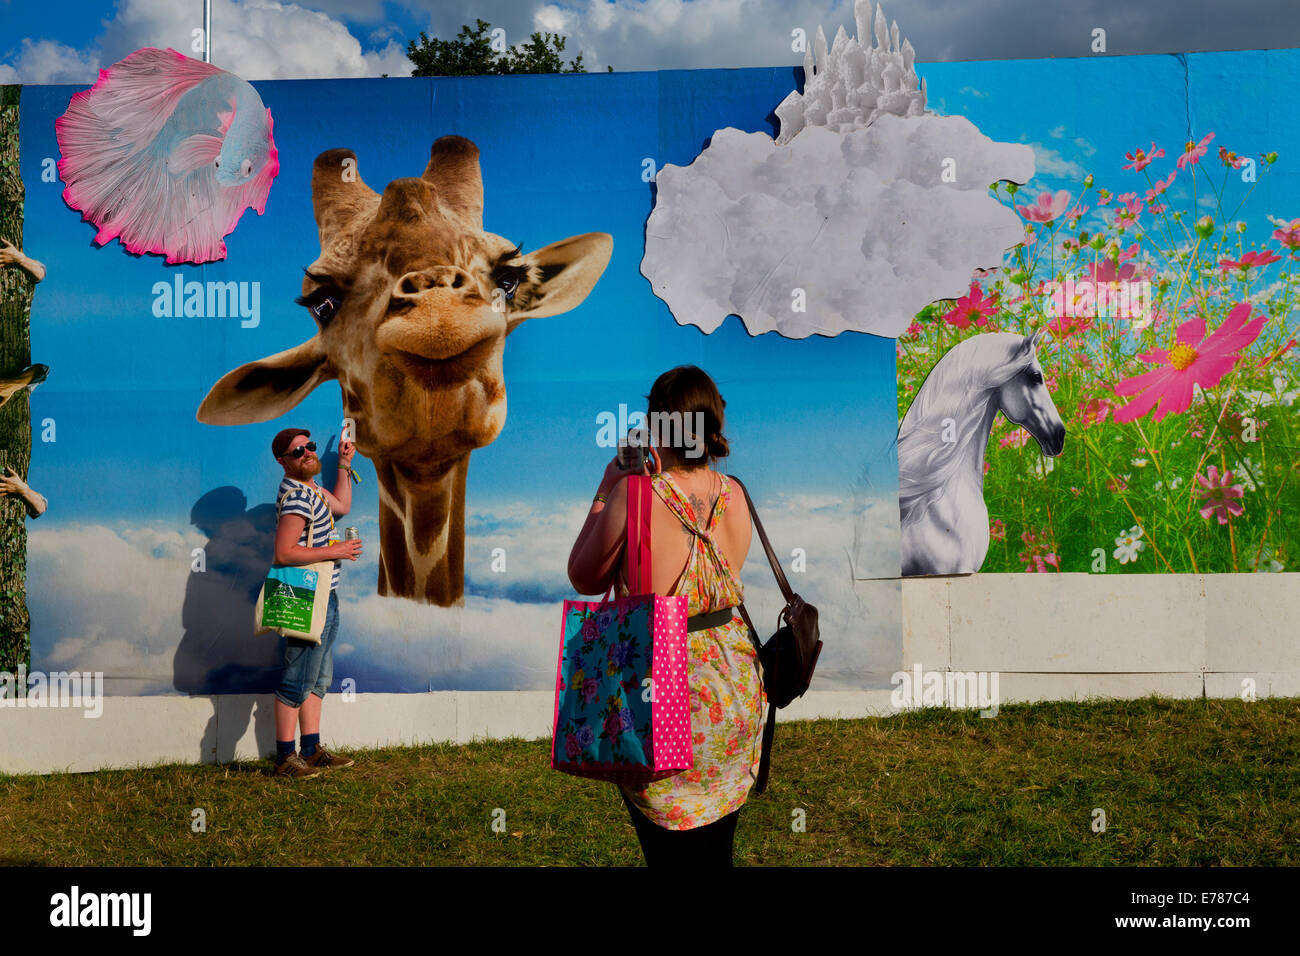 Glastonbury Festival 2014. Being photographed with a giraffe on the evolving graphic walls by Link Leisure - Stock Image